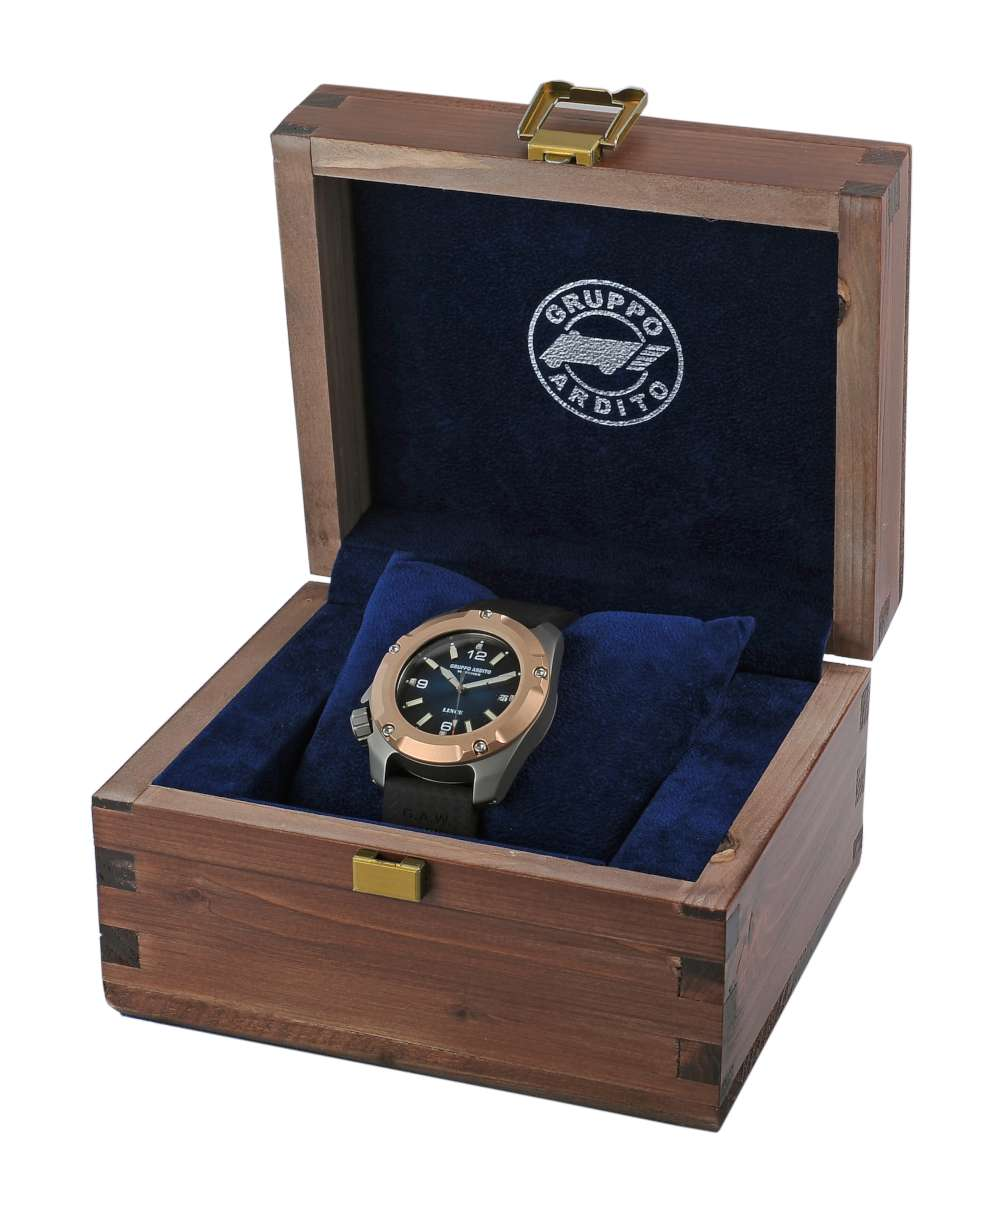 Gruppo Ardito Watches Lince in presentation box